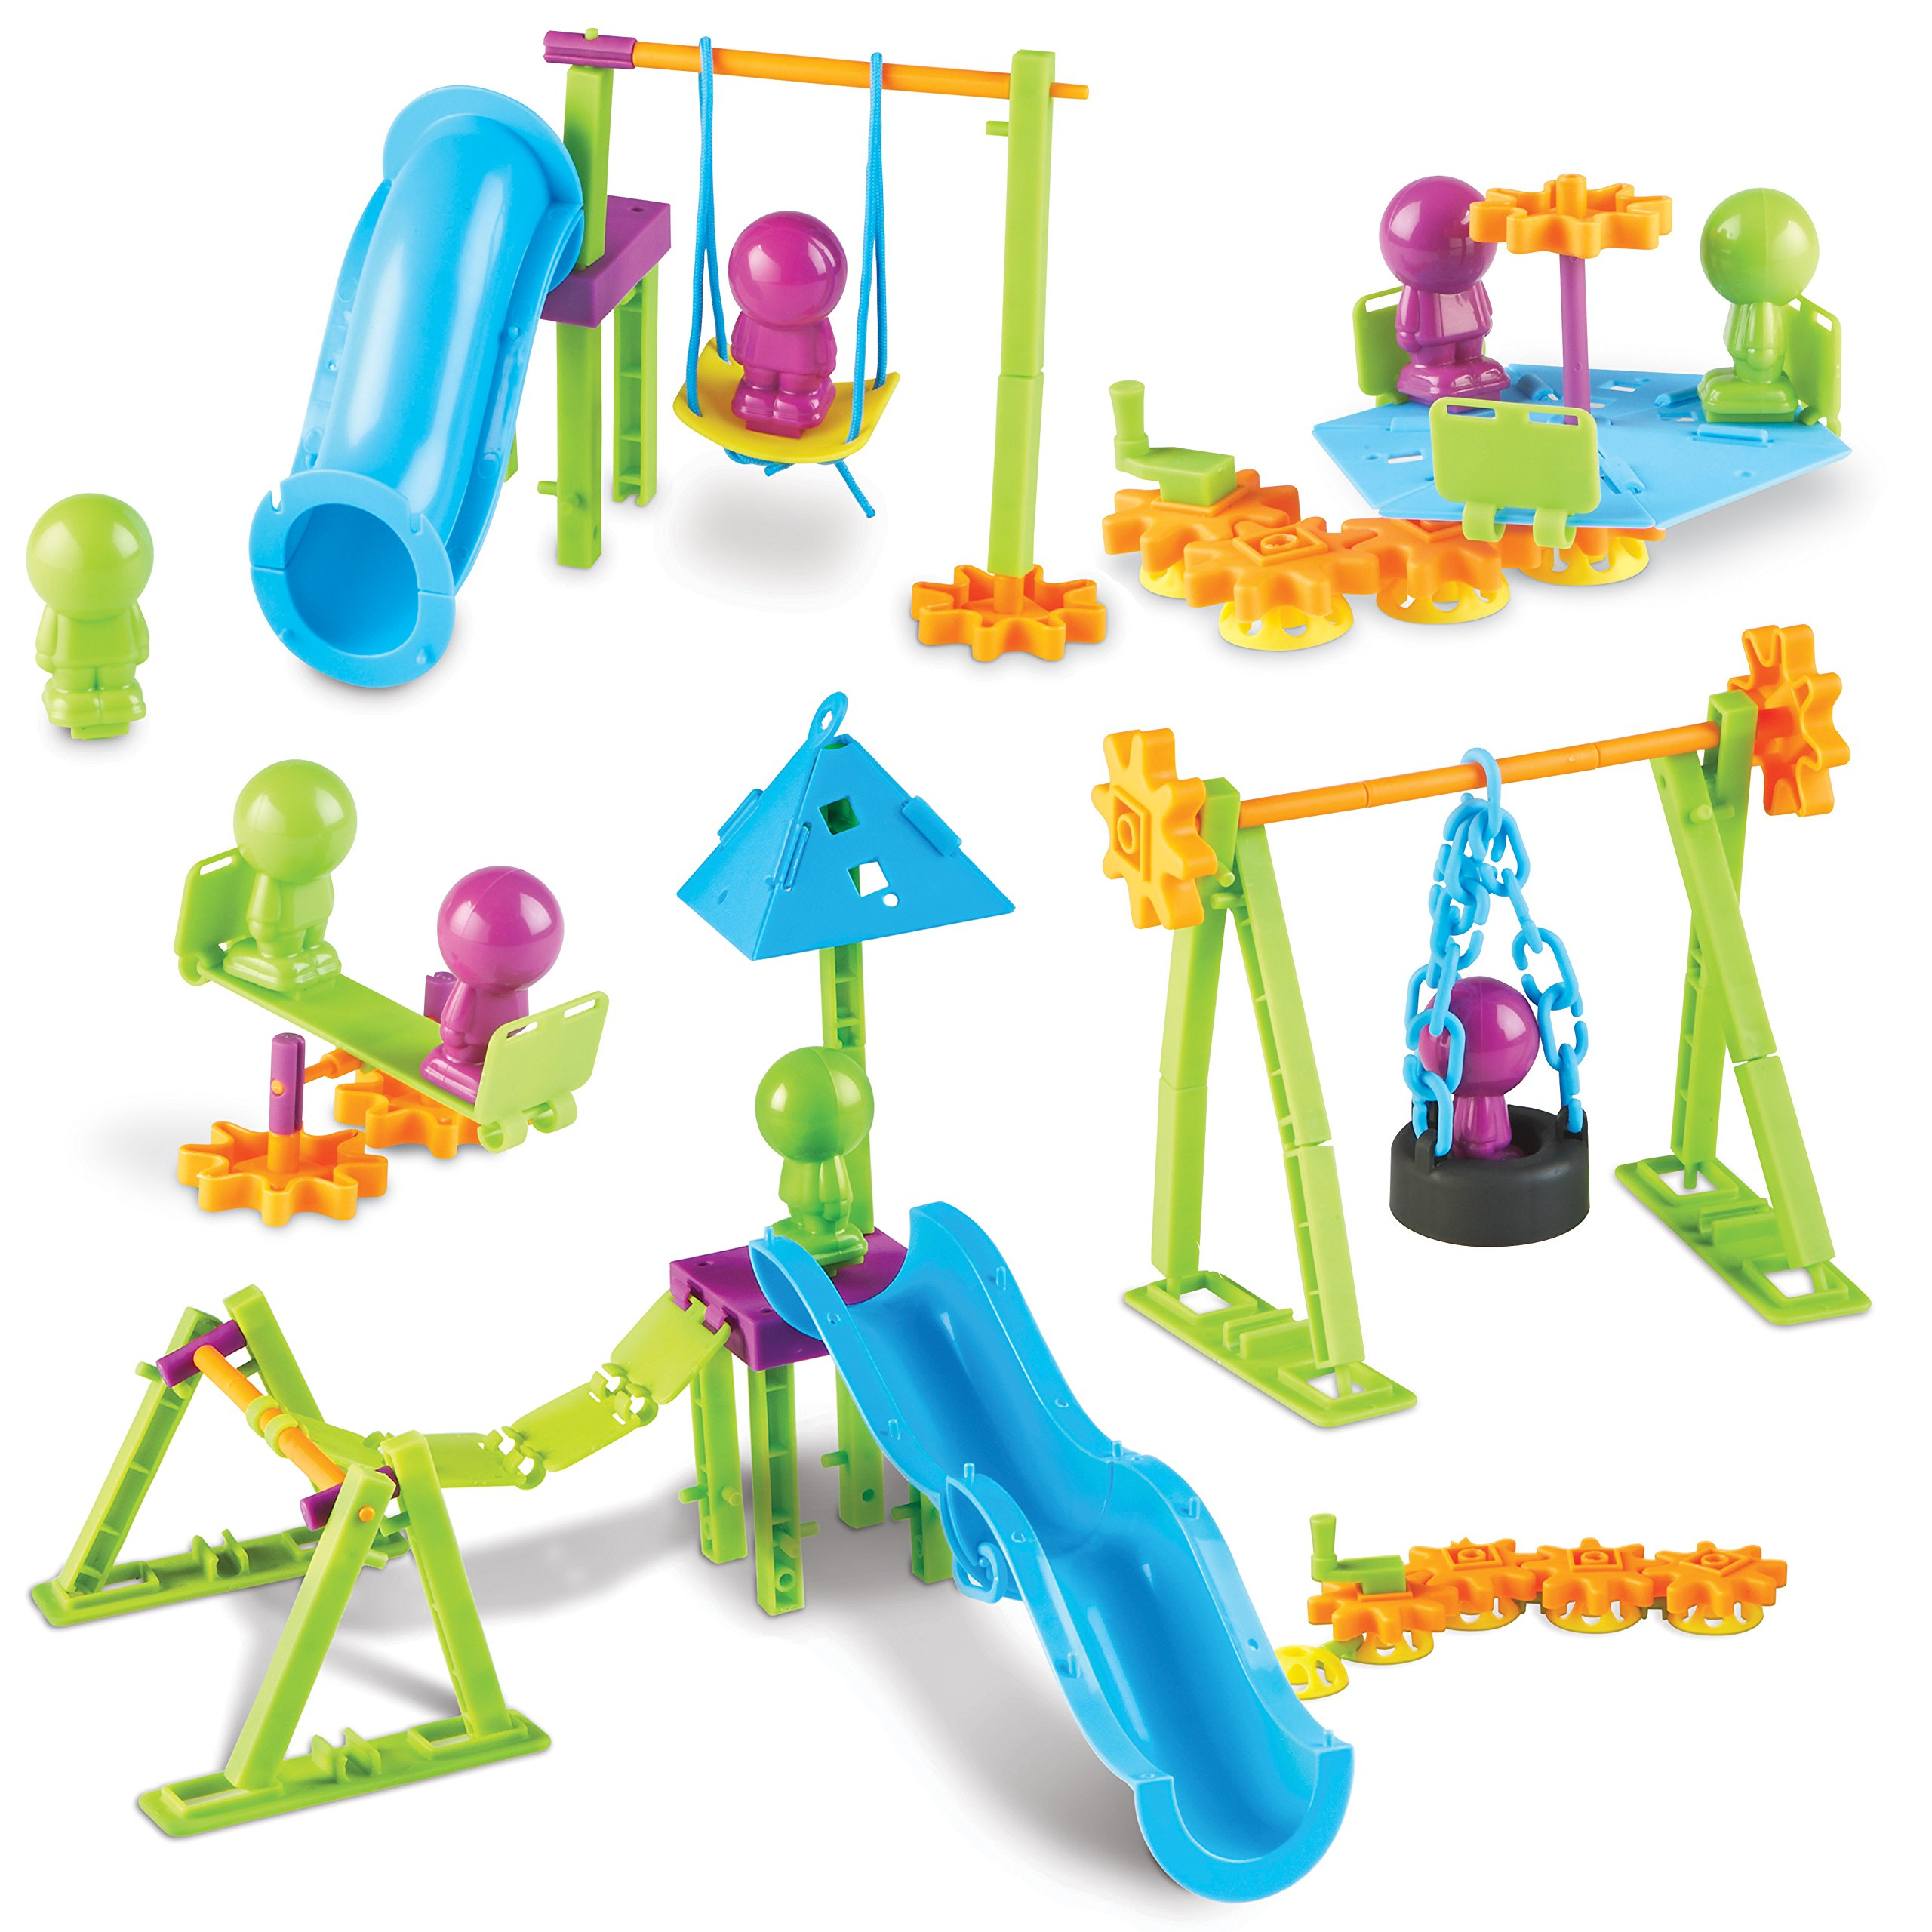 Learning Resources Playground Engineering & Design STEM Set, 104 Pieces by Learning Resources